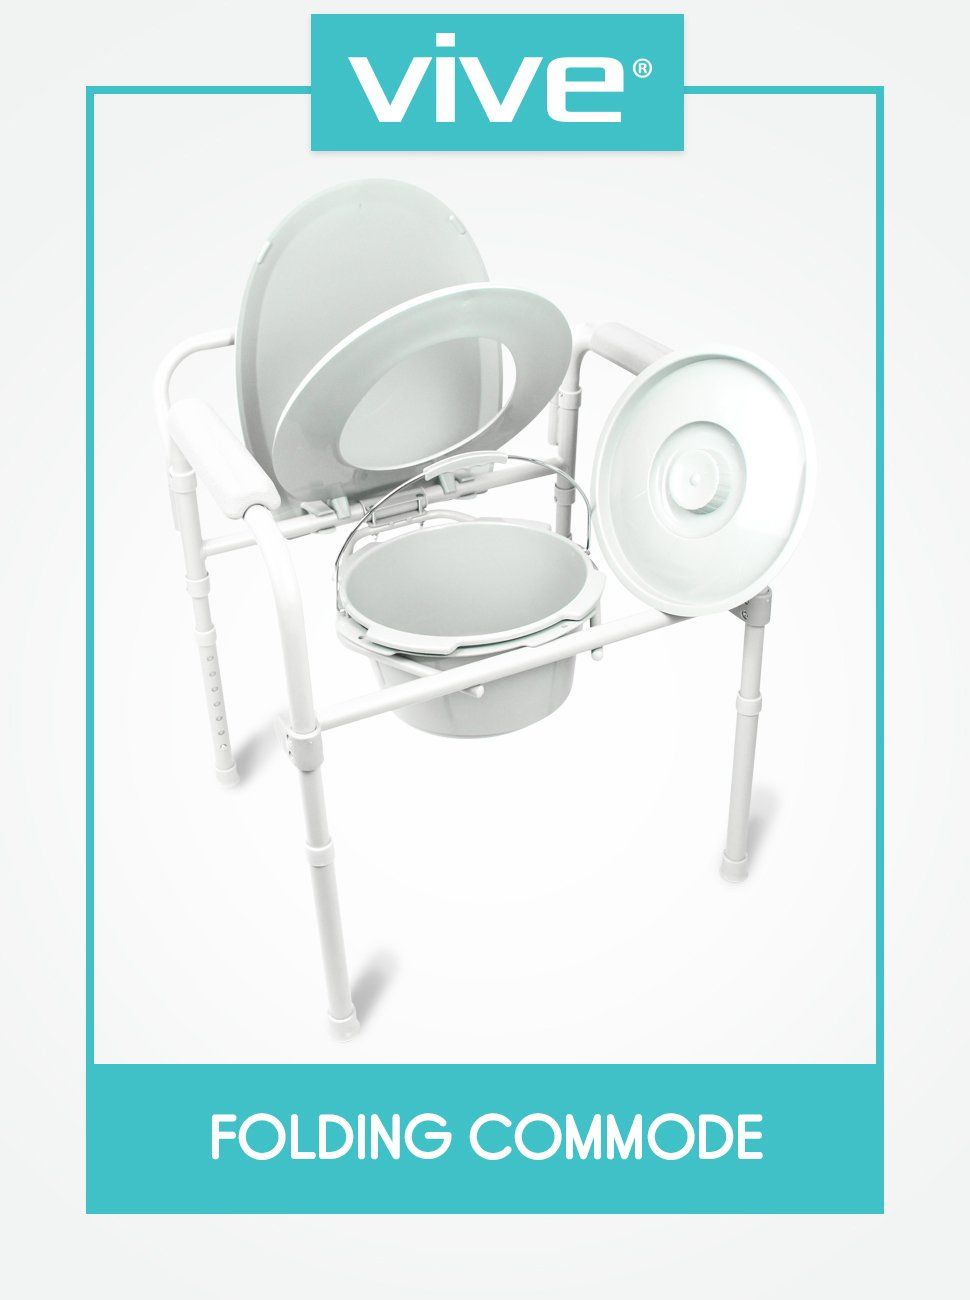 Amazon.com: Commode by Vive - Bedside Commode for Seniors, Handicap ...